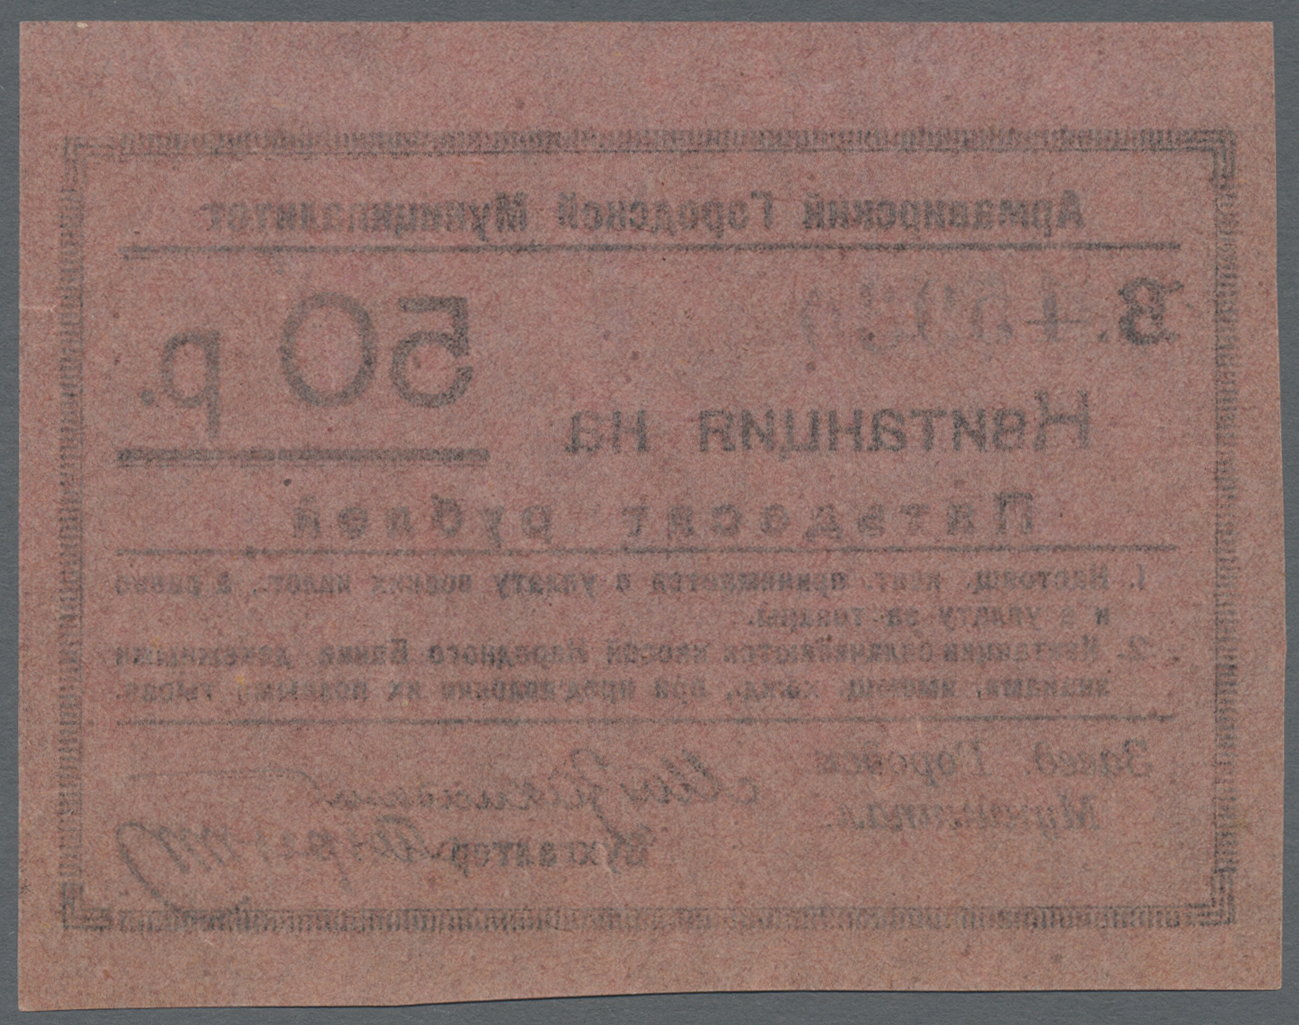 Lot 00742 - Russia / Russland | Banknoten  -  Auktionshaus Christoph Gärtner GmbH & Co. KG Sale #48 The Banknotes